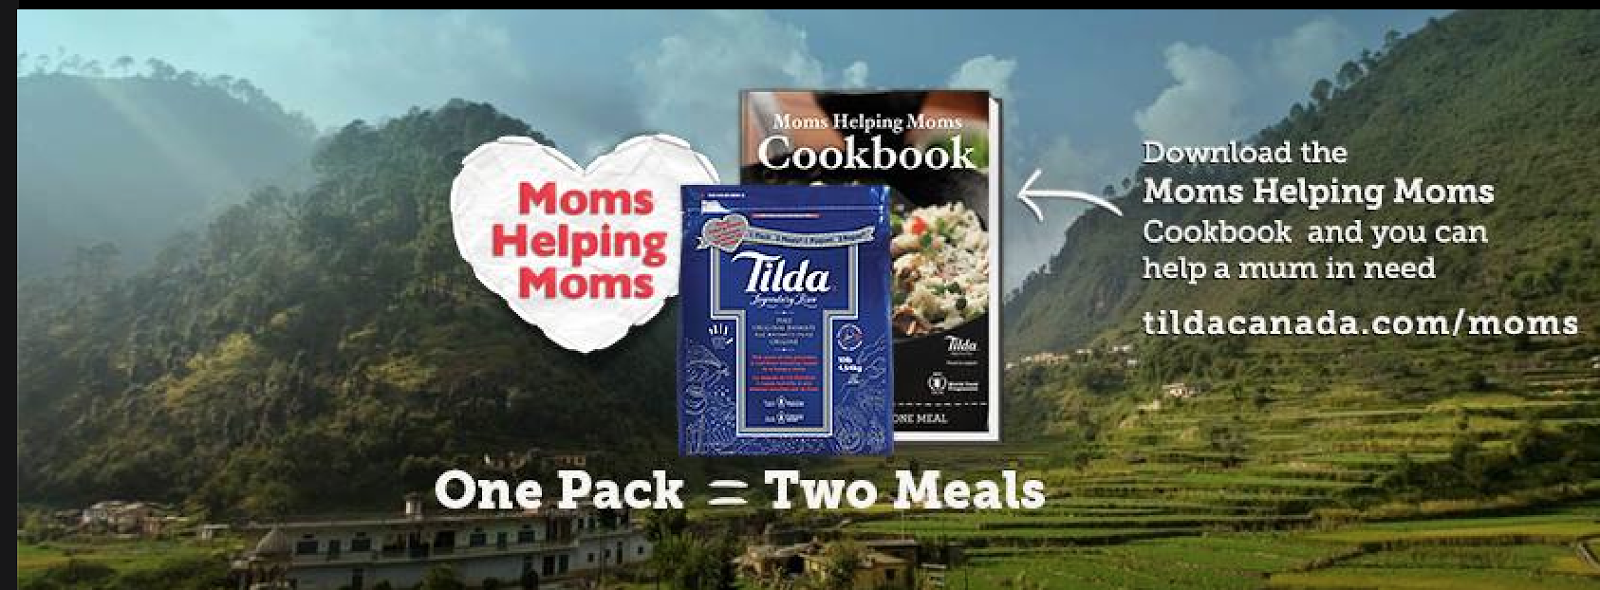 Image Tilda Rice Mums Helping Mums Banner showing Cookbook and Special marked package one pack=Two Meals